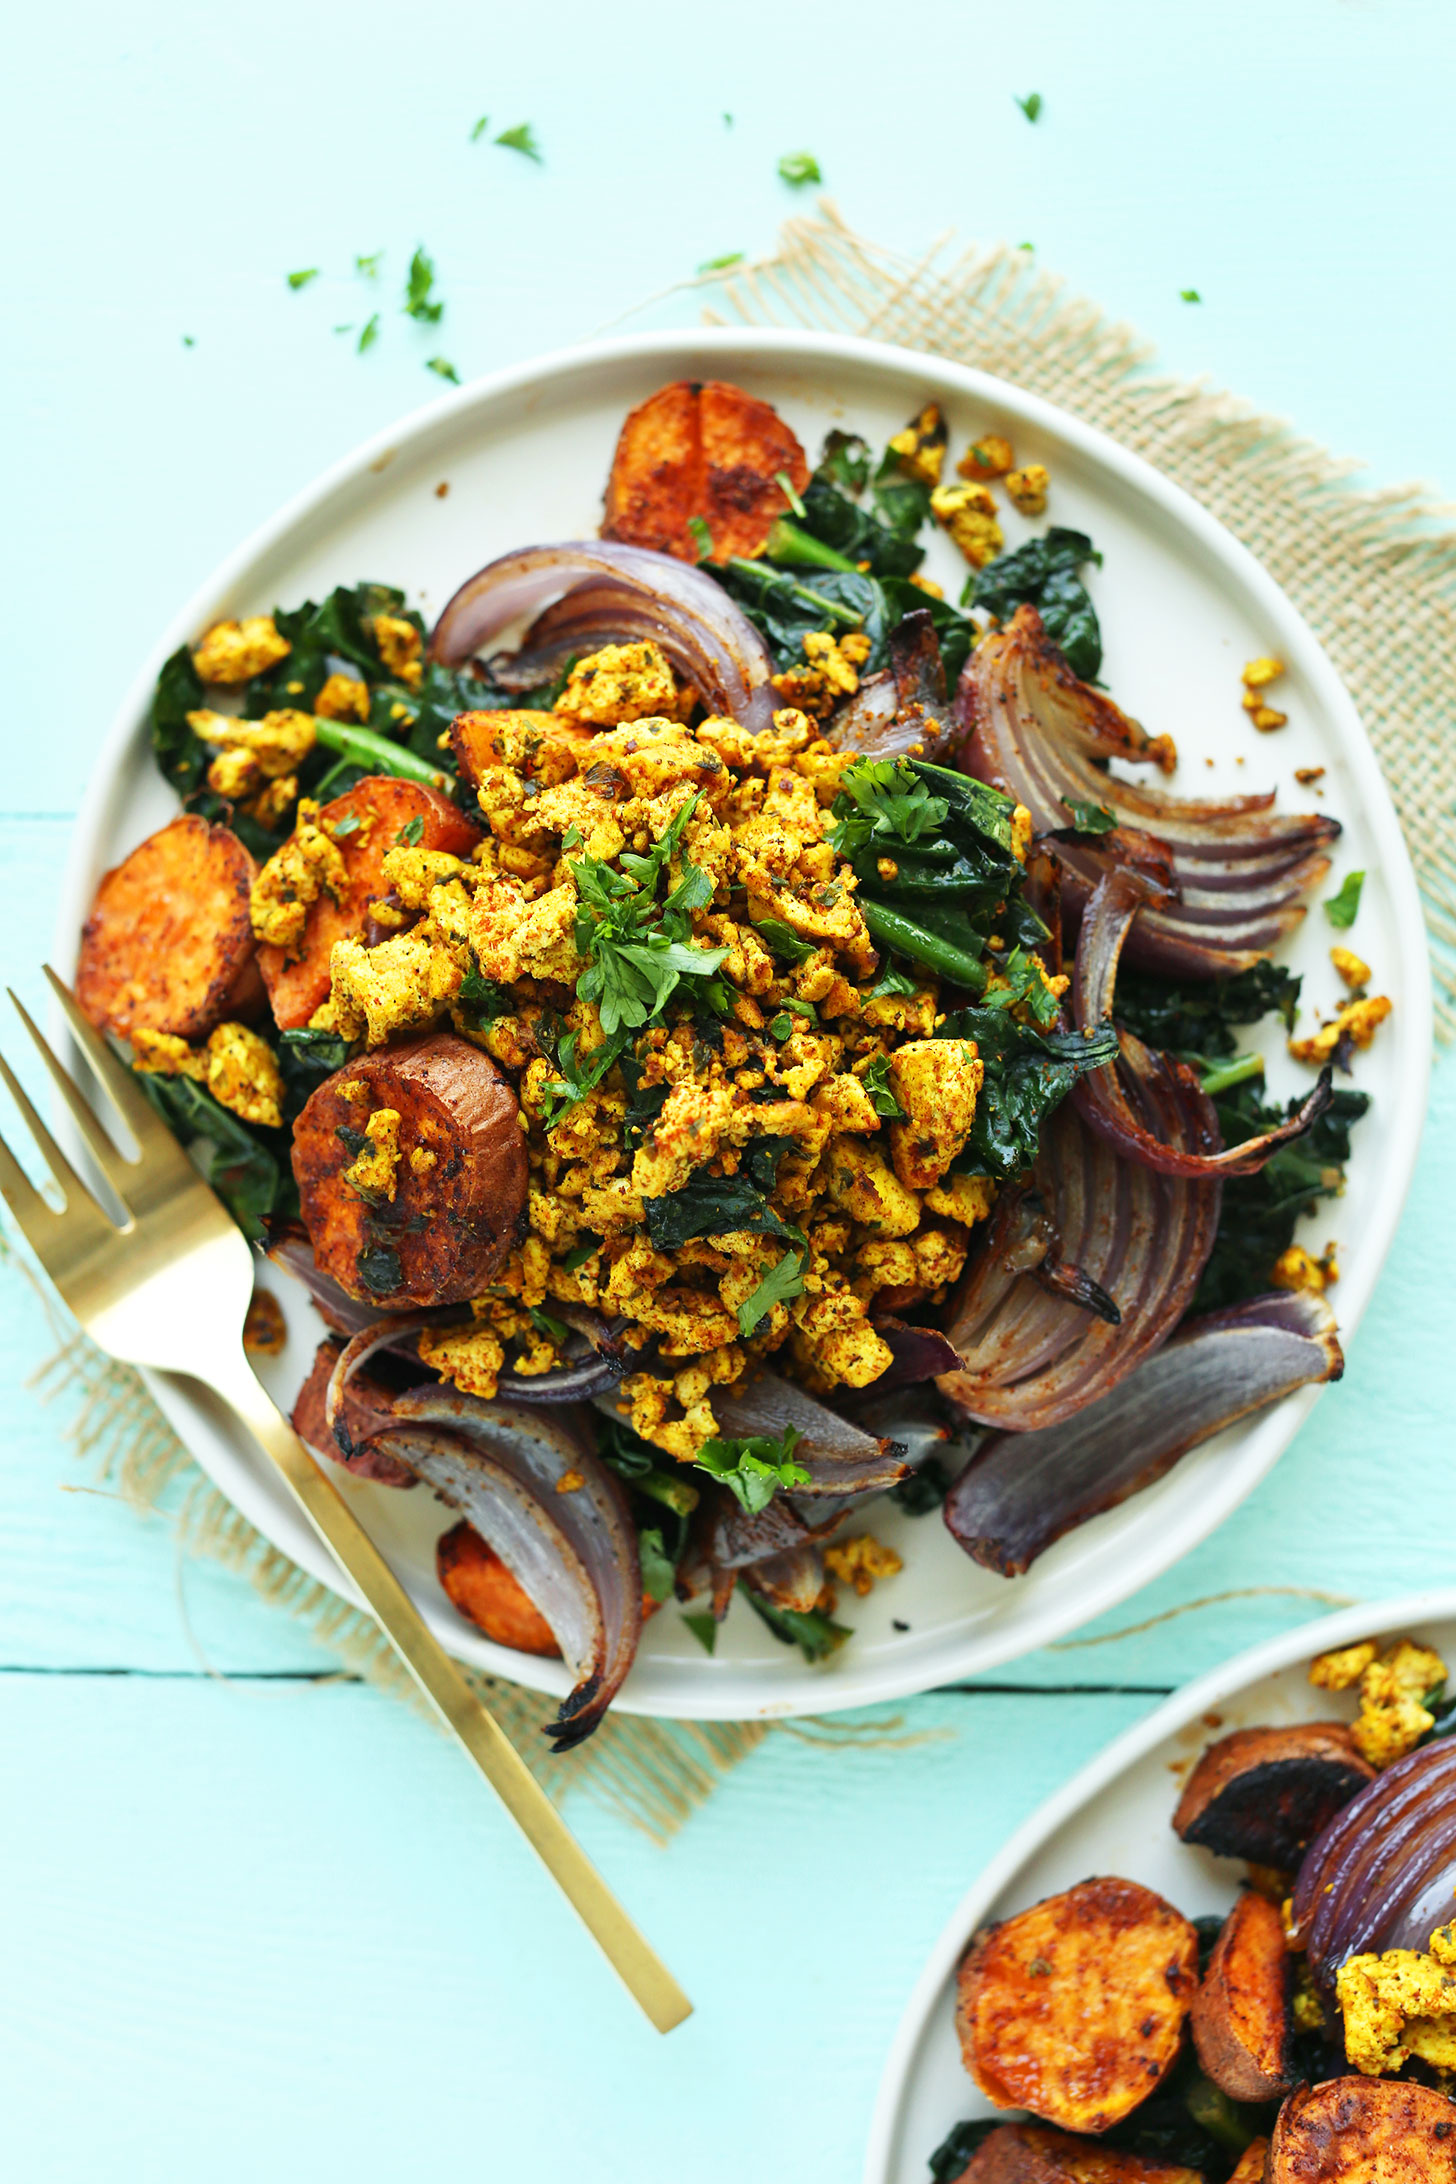 Plate of Savory Tofu Scramble with Kale, Sweet Potatoes, and Roasted Red Onion